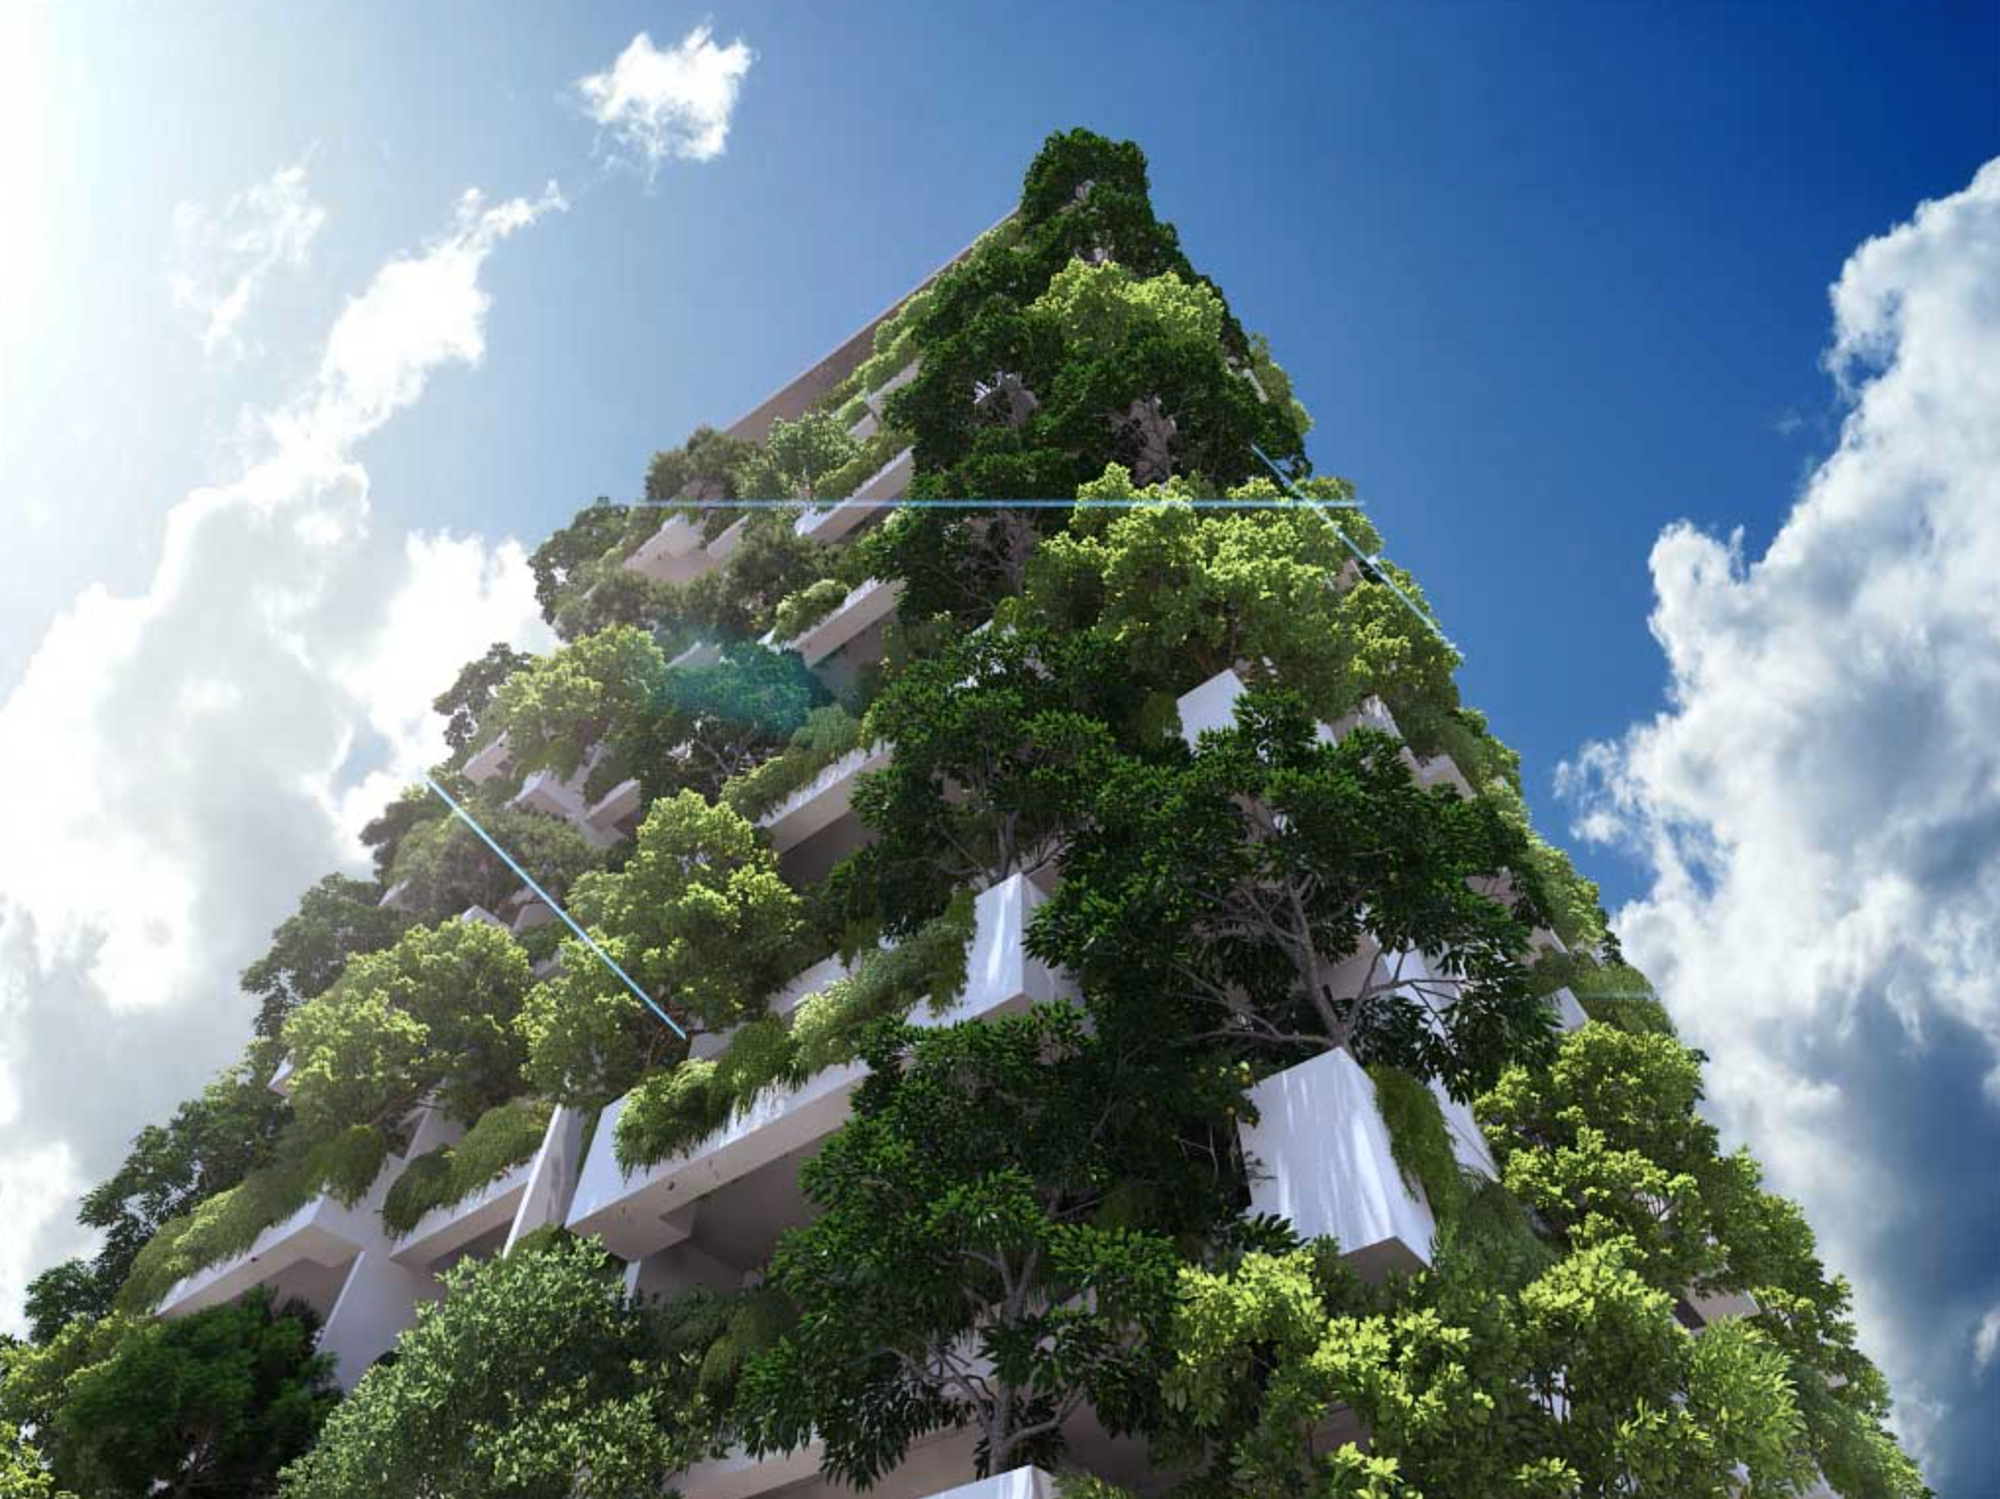 Milroy Perera Designs Worldu0027s Tallest Residential Vertical Garden, Courtesy  Of Clearpoint / Milroy Perera